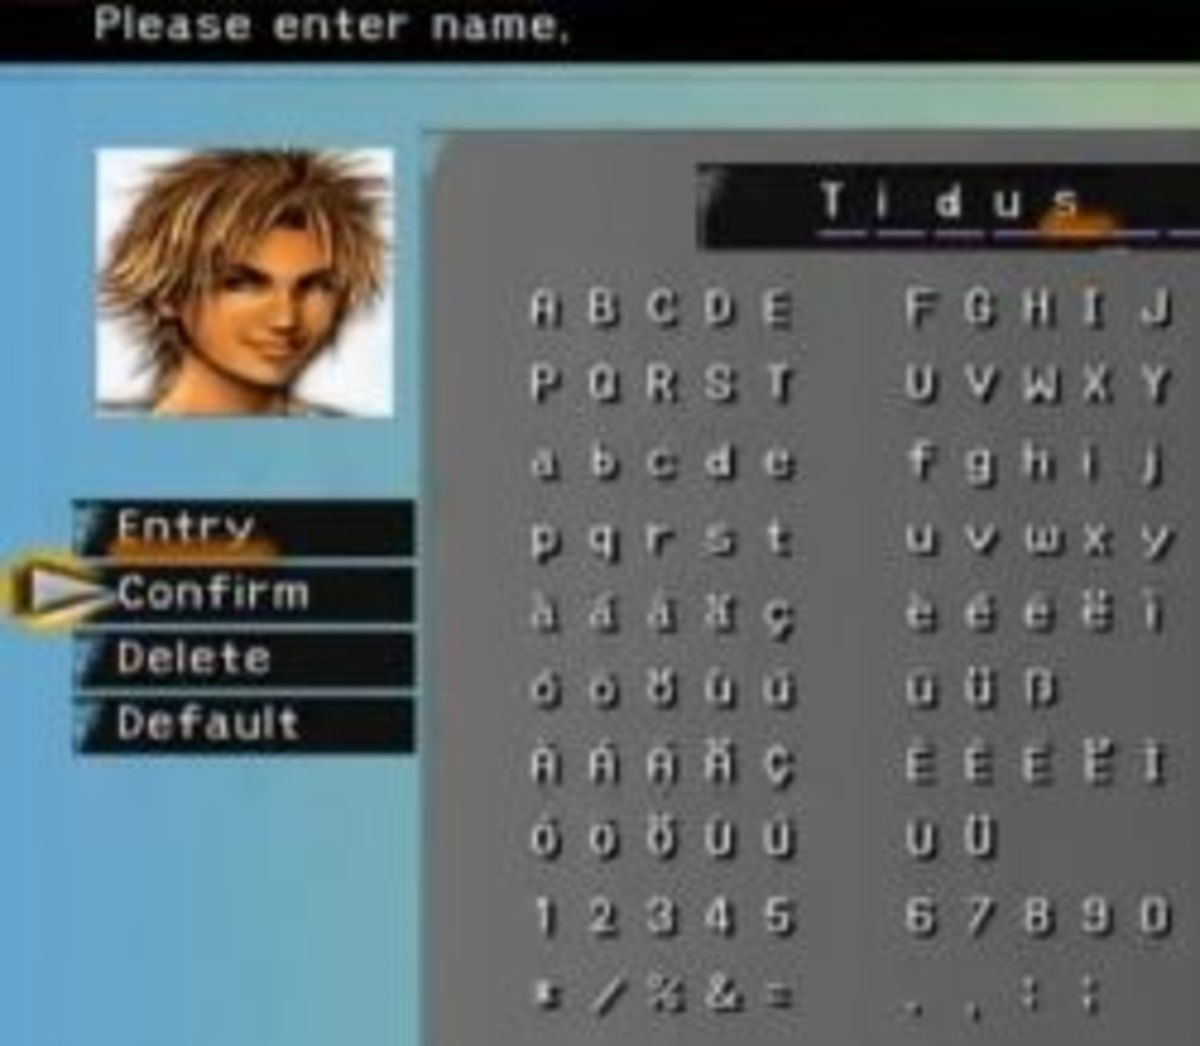 Final Fantasy Character Names